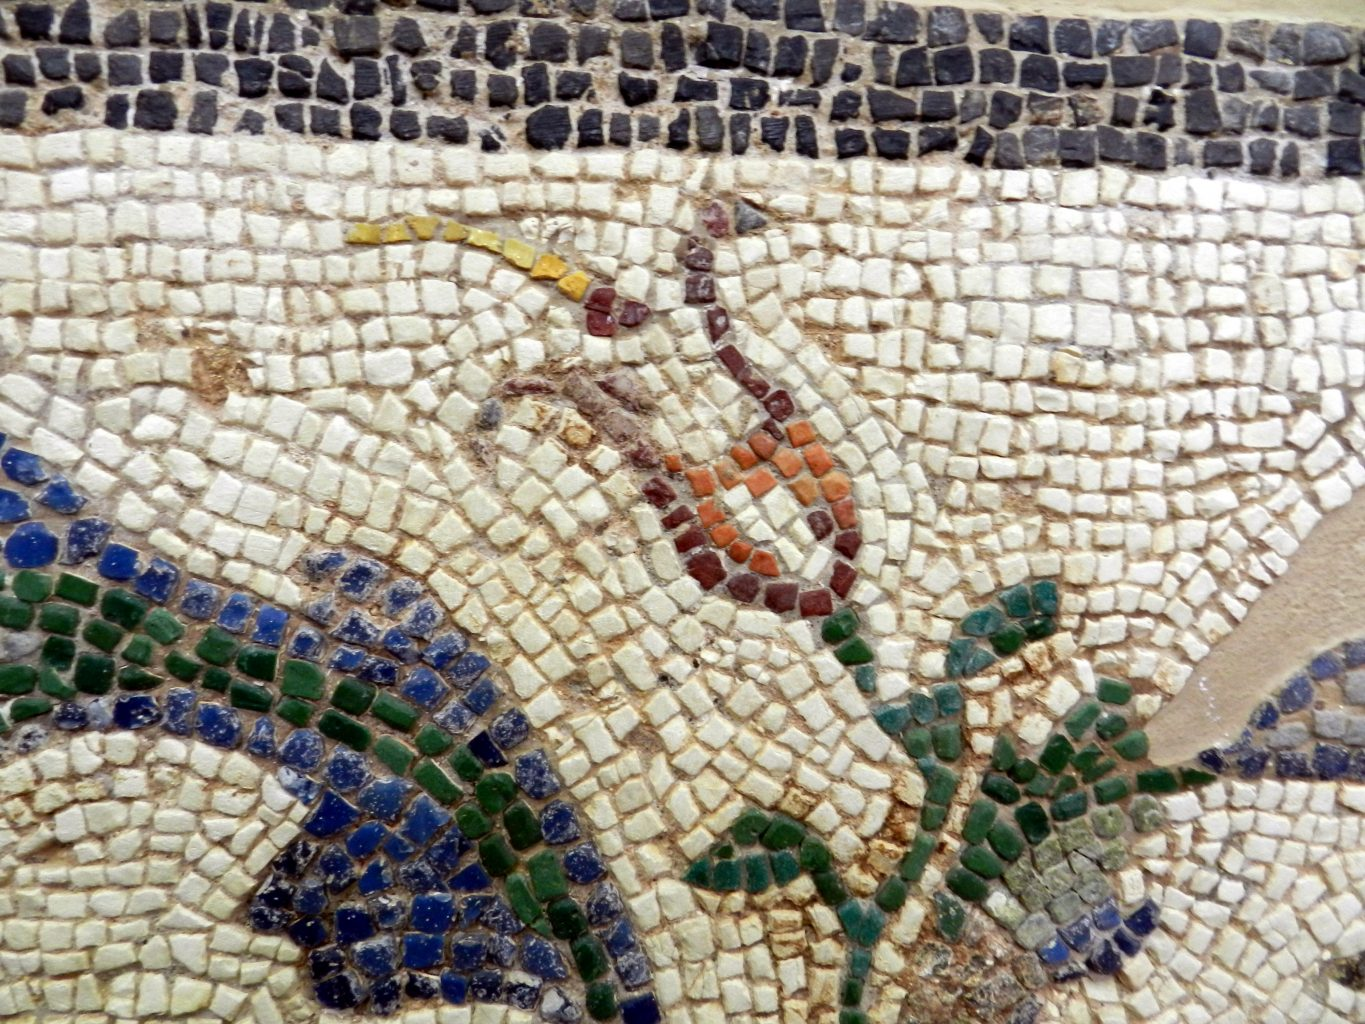 Up close and personal: the Roman mosaics of Corinth, Greece.